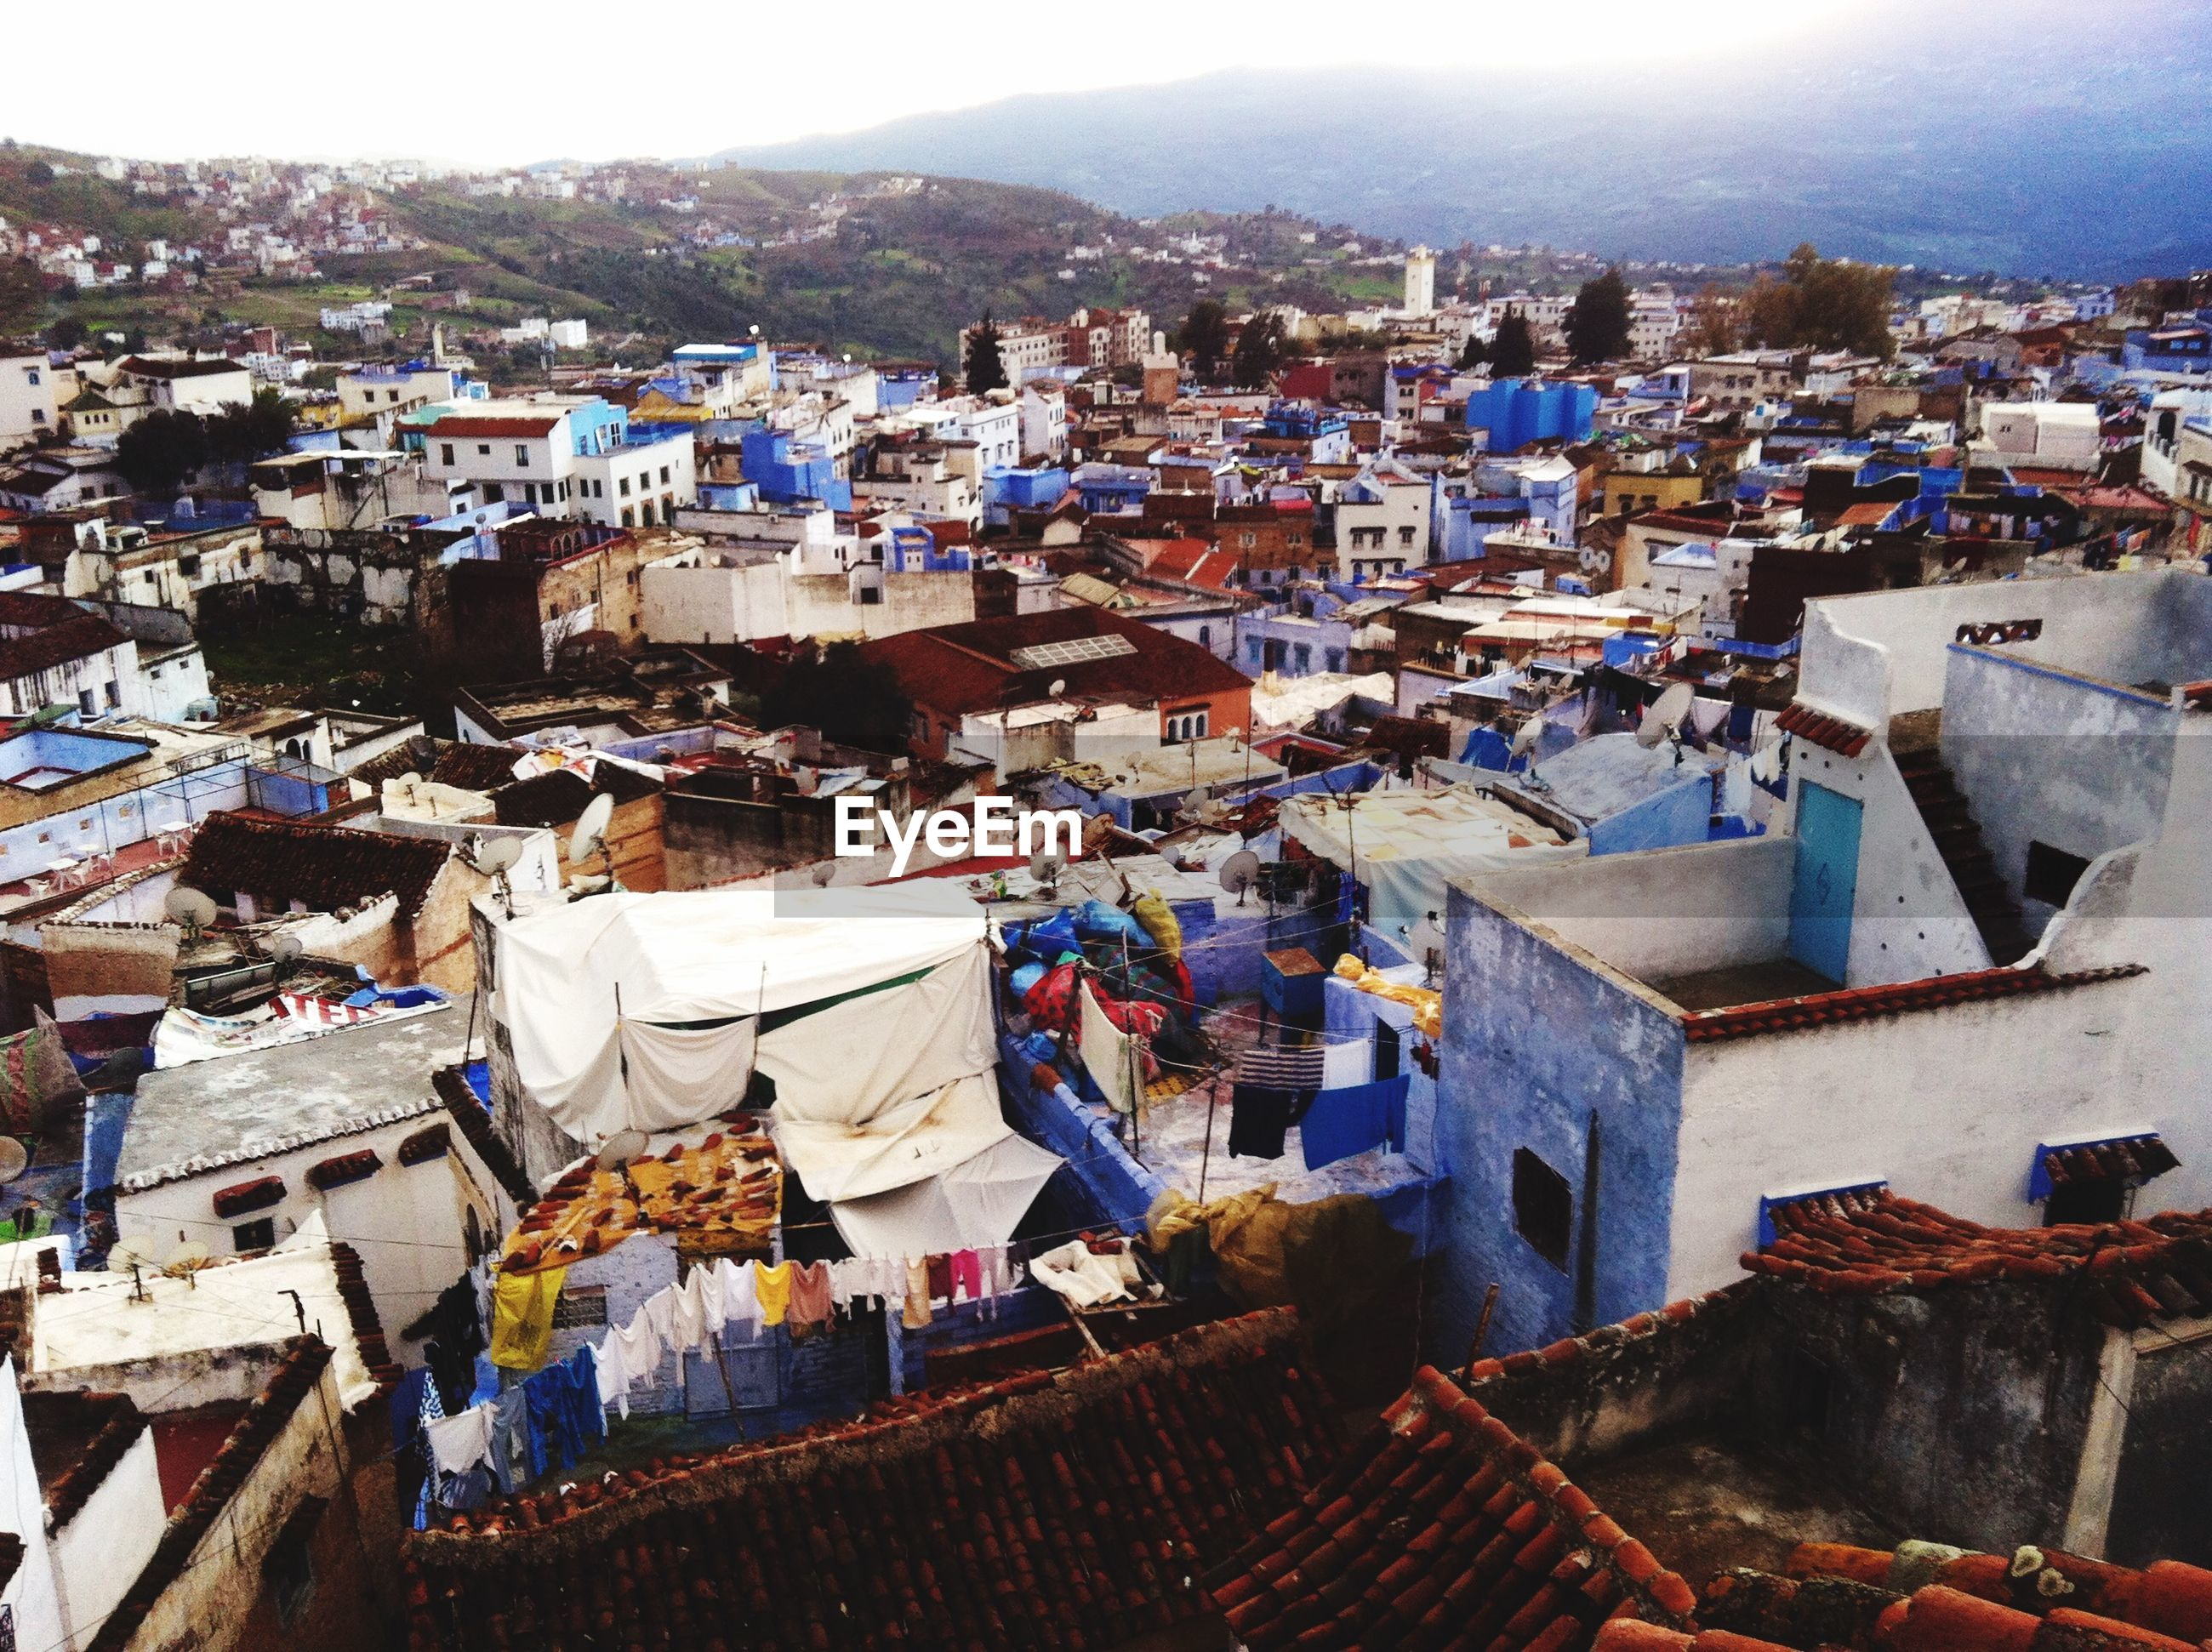 building exterior, architecture, built structure, residential district, residential structure, house, townscape, crowded, residential building, town, high angle view, roof, cityscape, city, community, human settlement, rooftop, housing settlement, sky, day